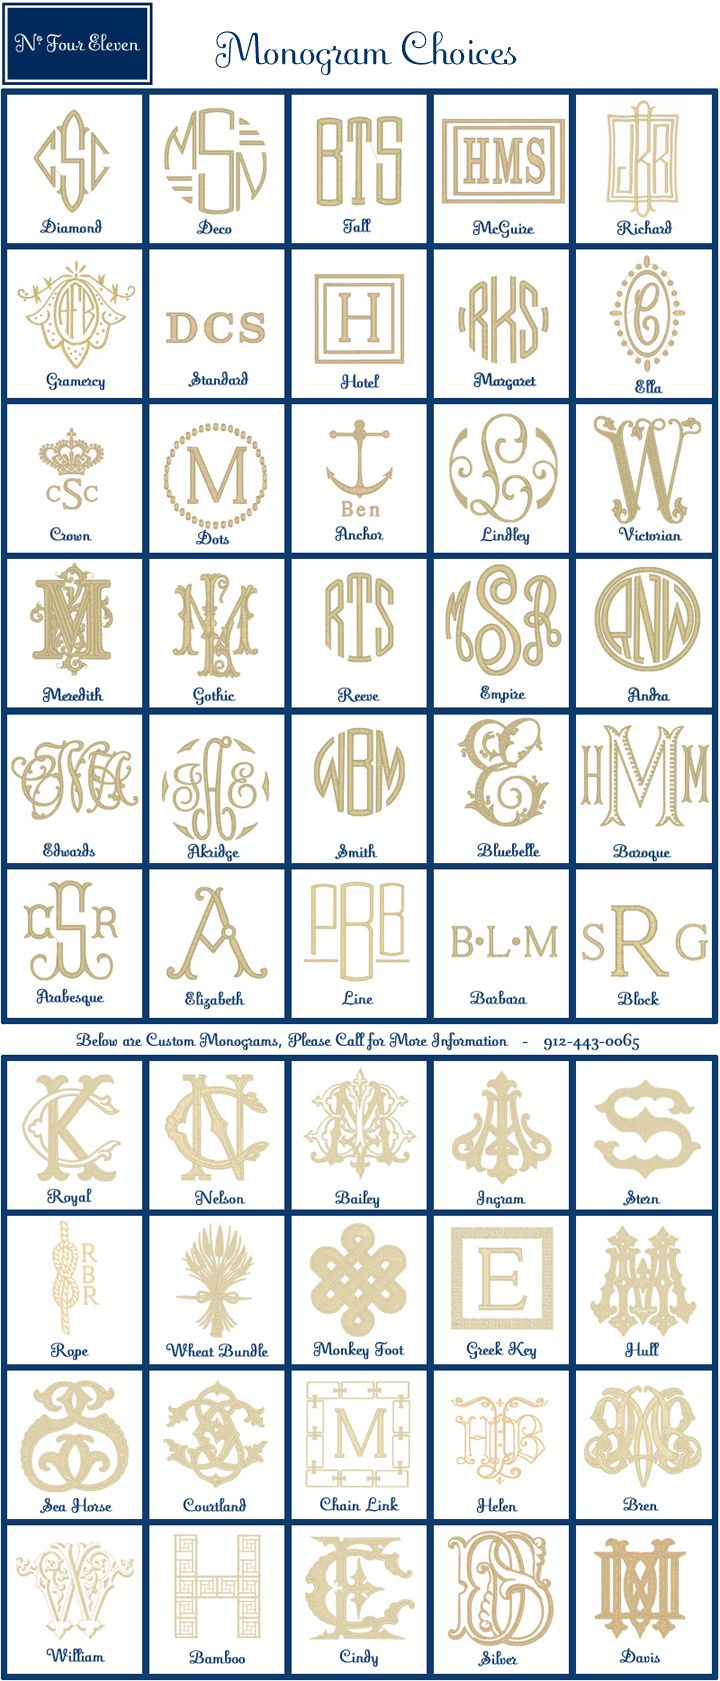 site with great monograms